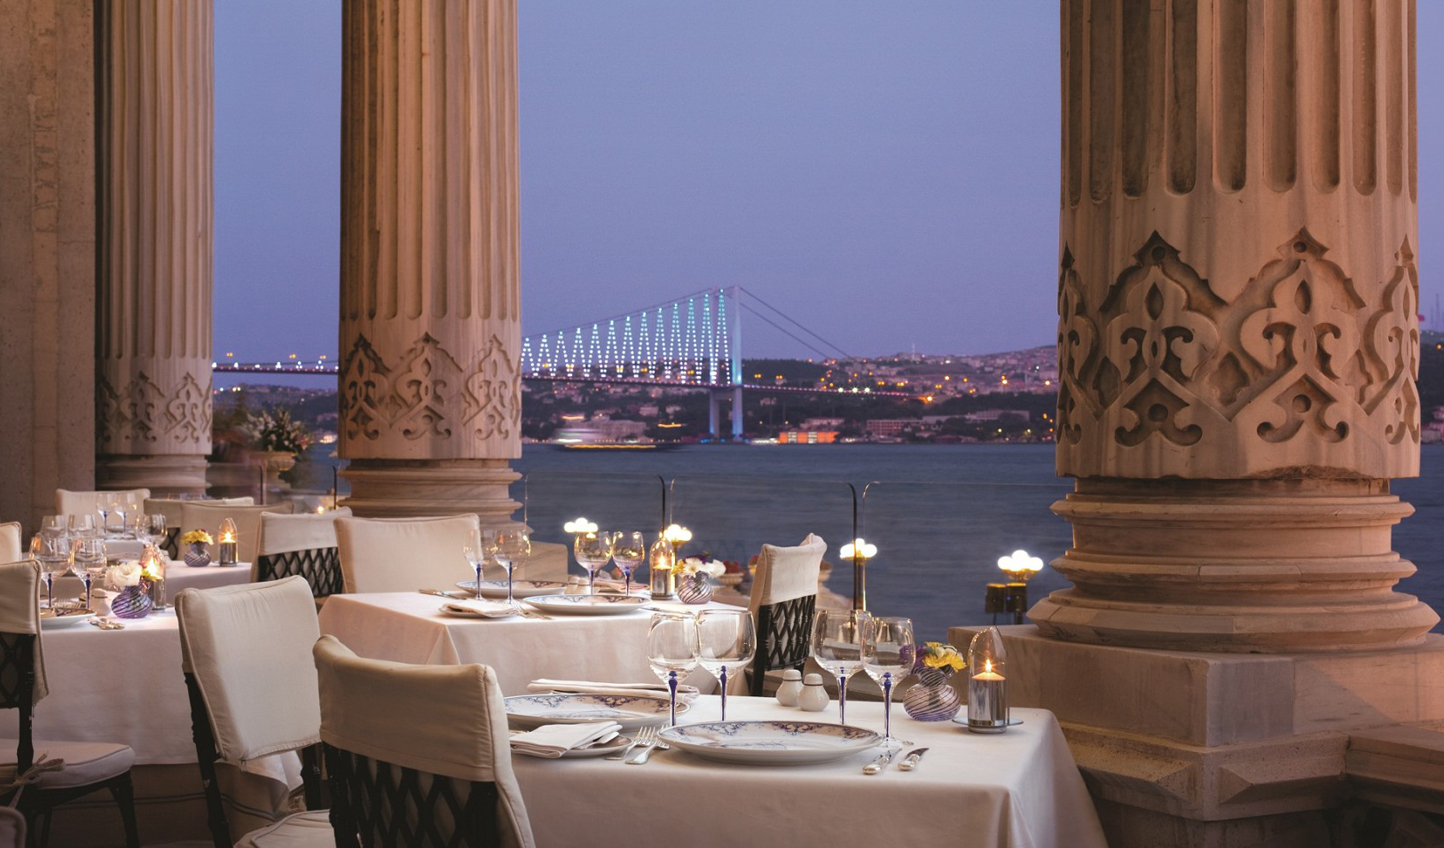 Enjoy dinner overlooking the Bosphorus